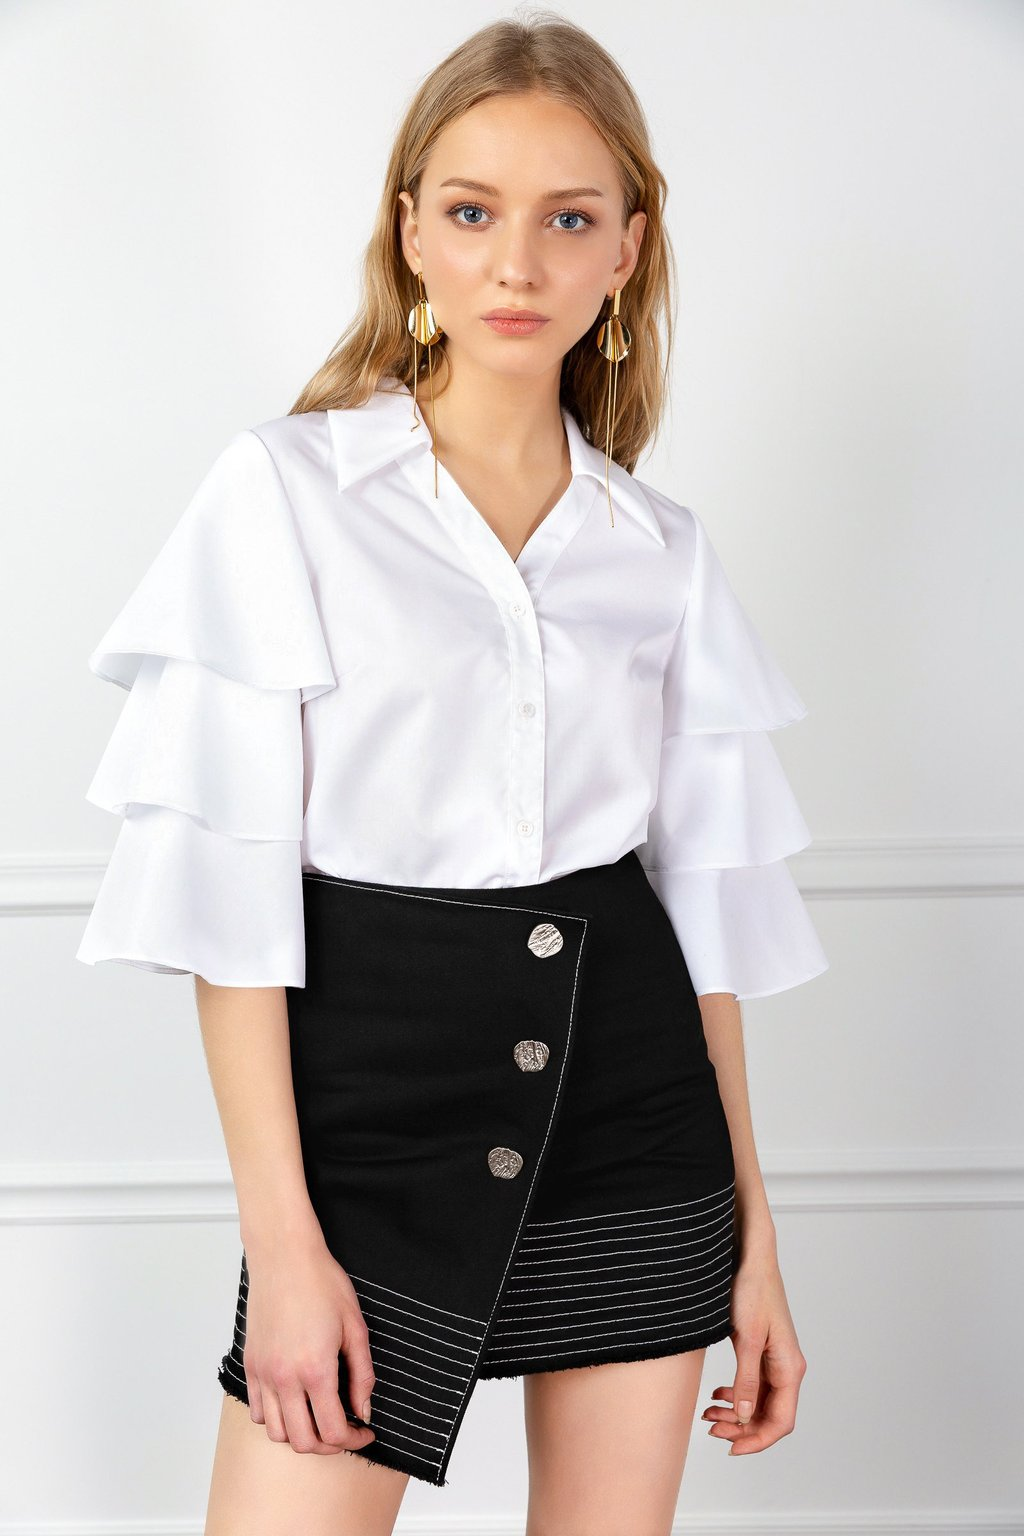 Tiered Lana Blouse and Heirloom Earrings by J.ING women's fashion and accessories